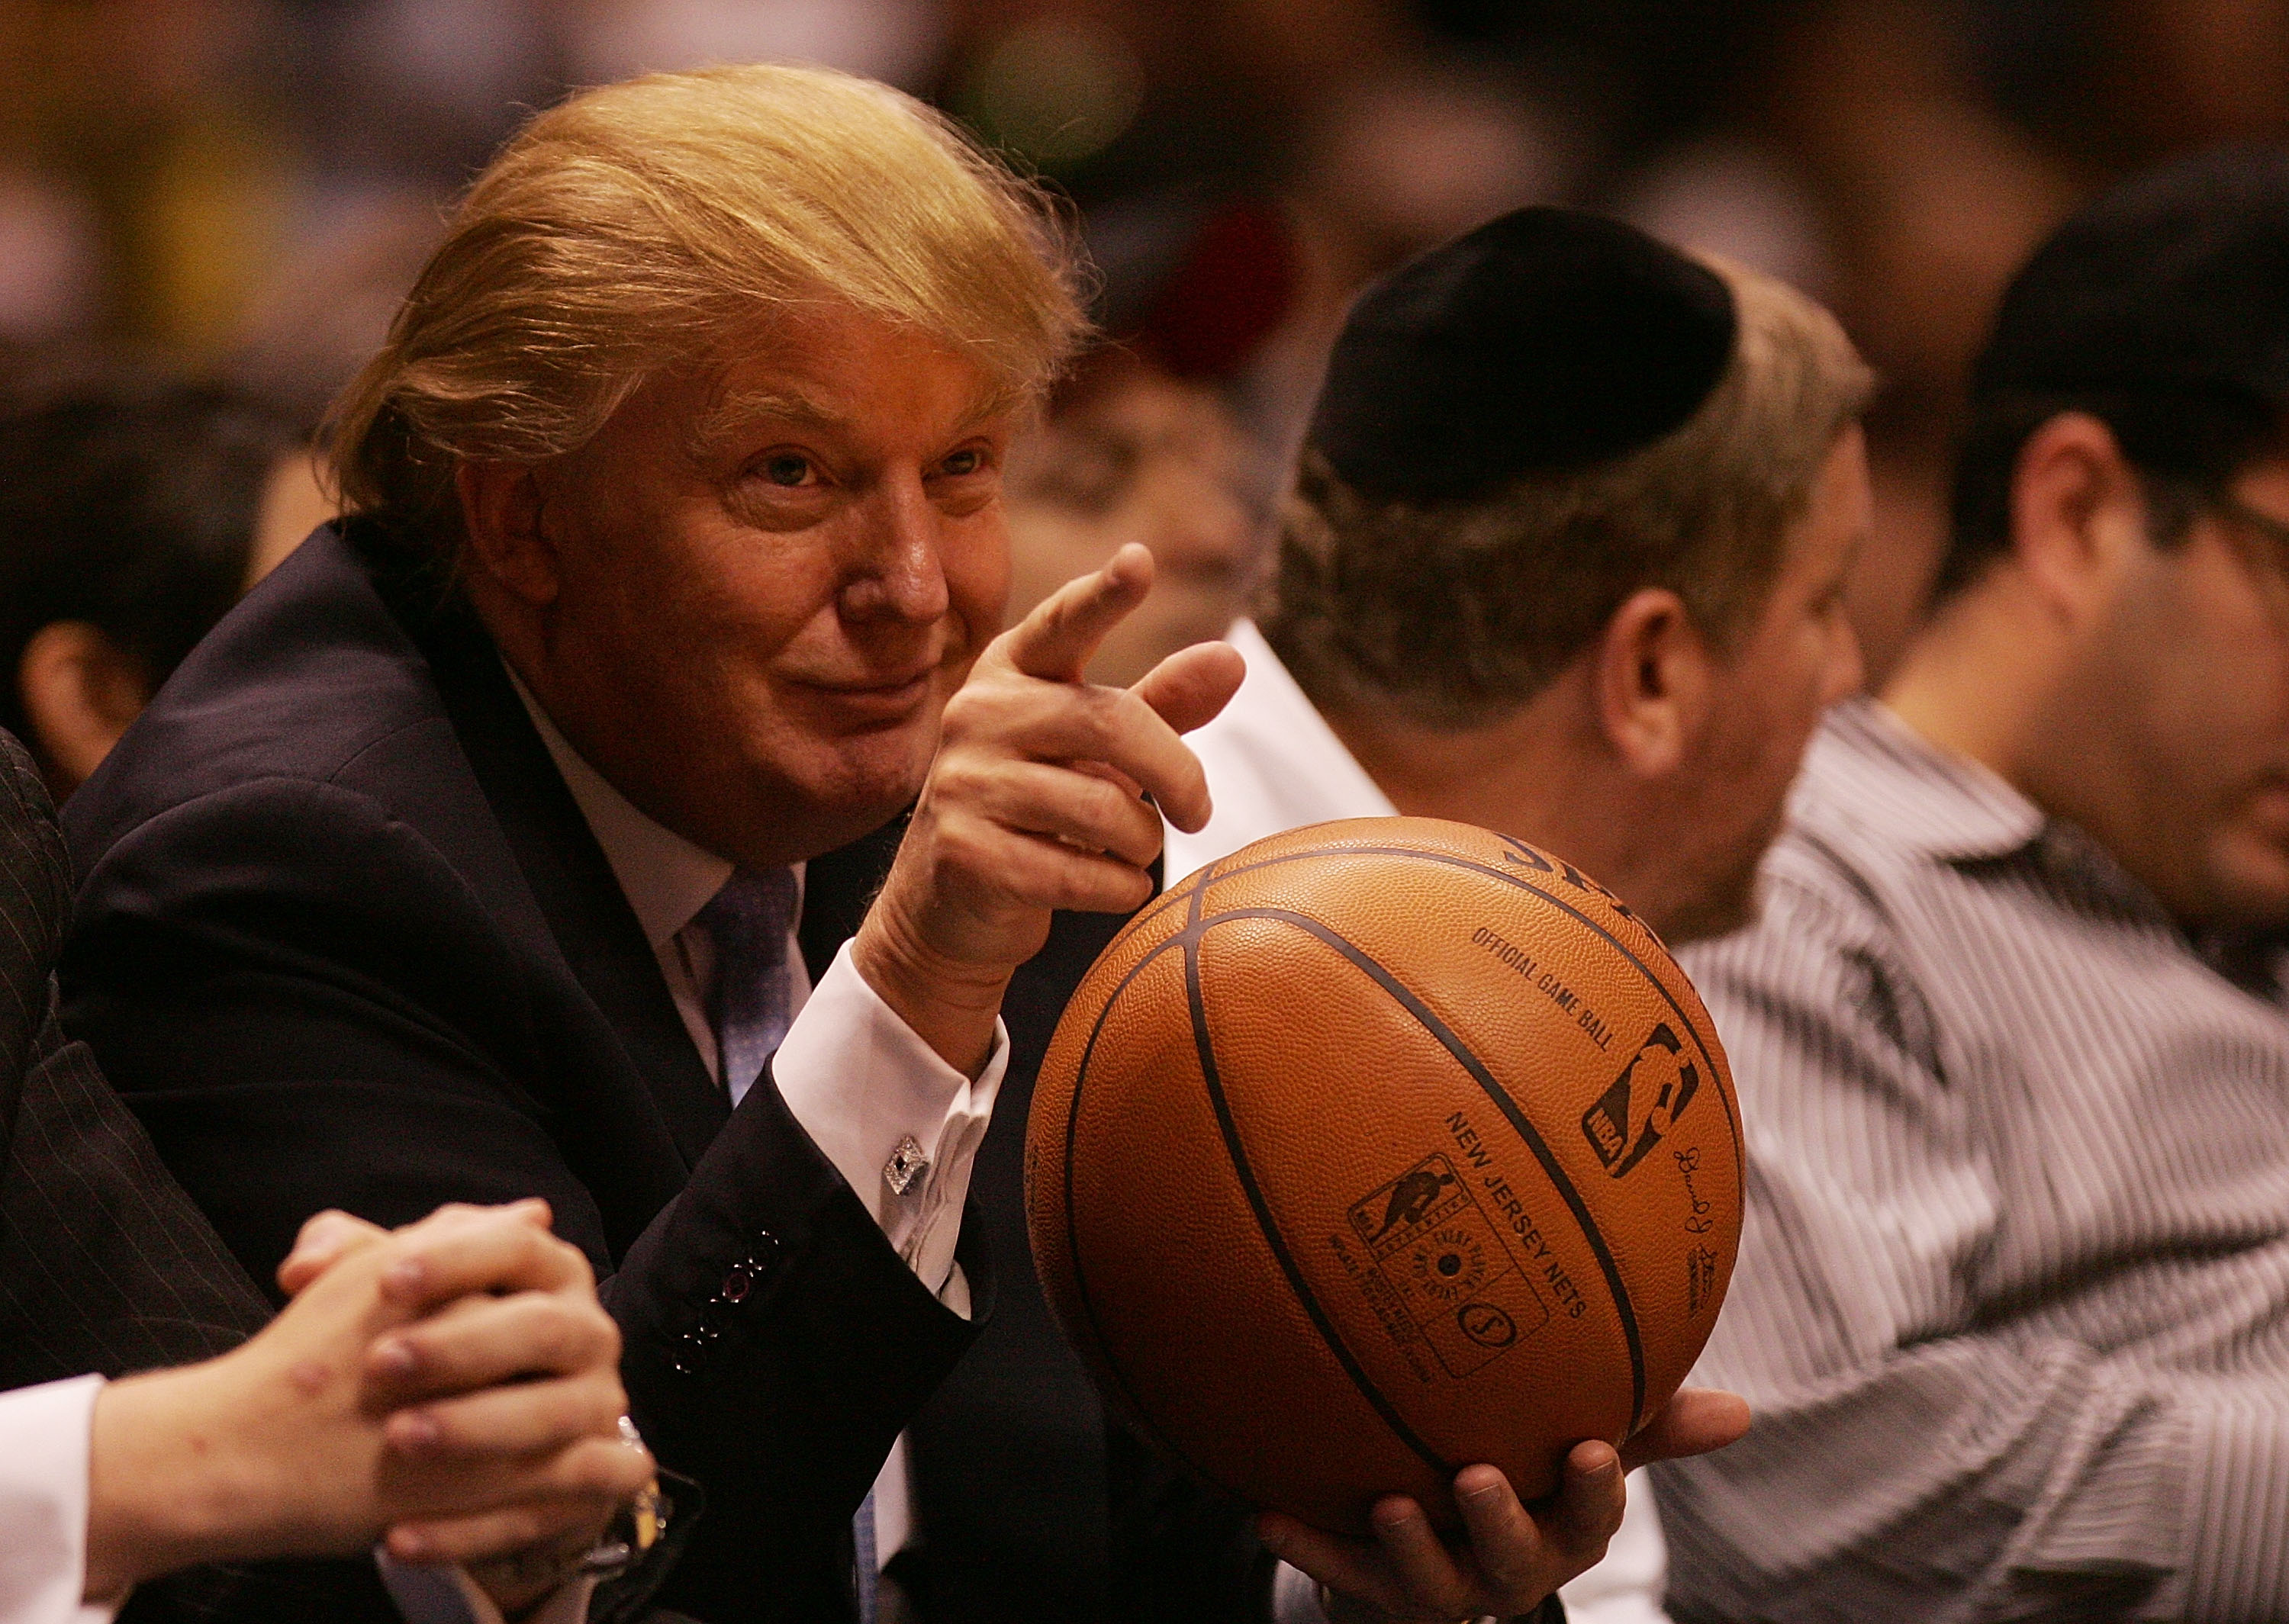 EAST RUTHERFORD, NJ - OCTOBER 31:  Donald Trump sits courtside at the New Jersey Nets and the Chicago Bulls game at the Izod Center on October 31, 2007 in East Rutherford, New Jersey. NOTE TO USER: User expressly acknowledges and agrees that, by downloading and or using this photograph, user is consenting to the term and conditions of the Getty Images License Agreement (Photo by Nick Laham/Getty Images)